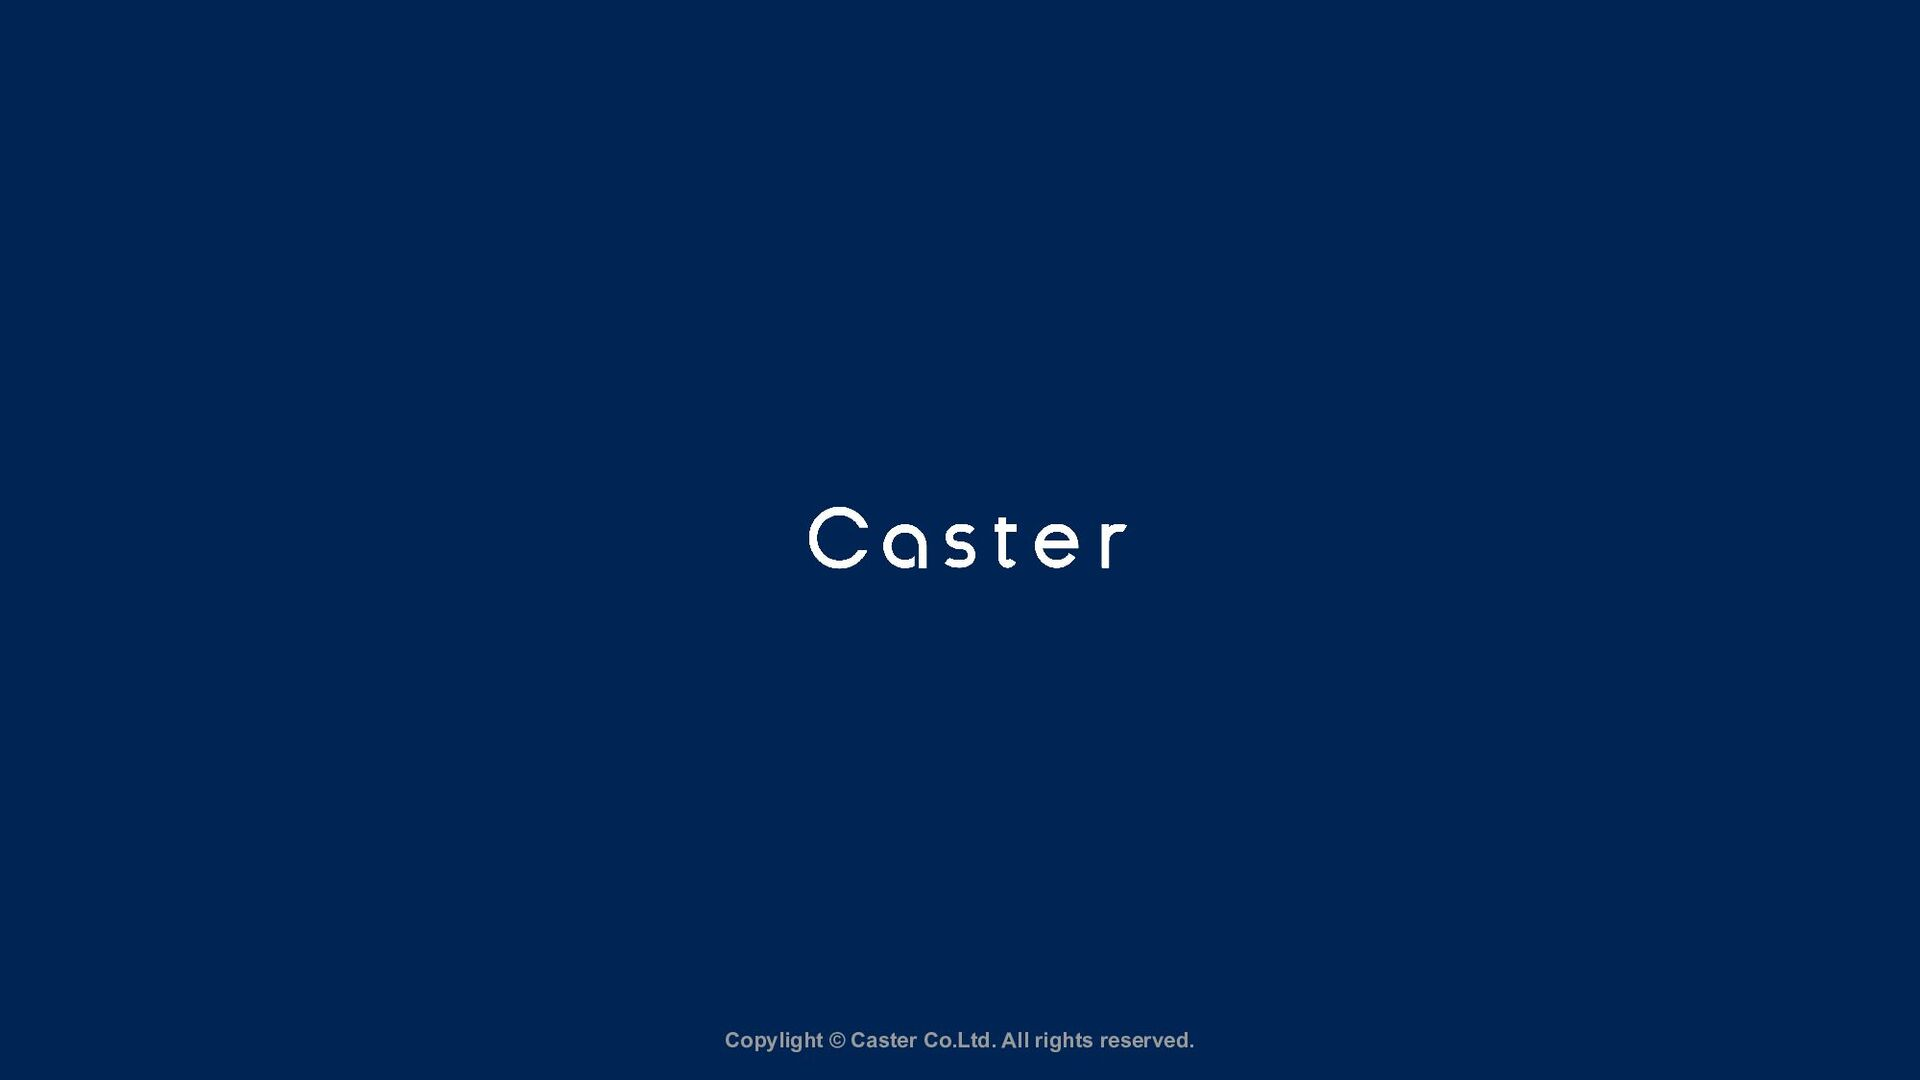 Copylight © Caster Co.Ltd. All rights reserved.